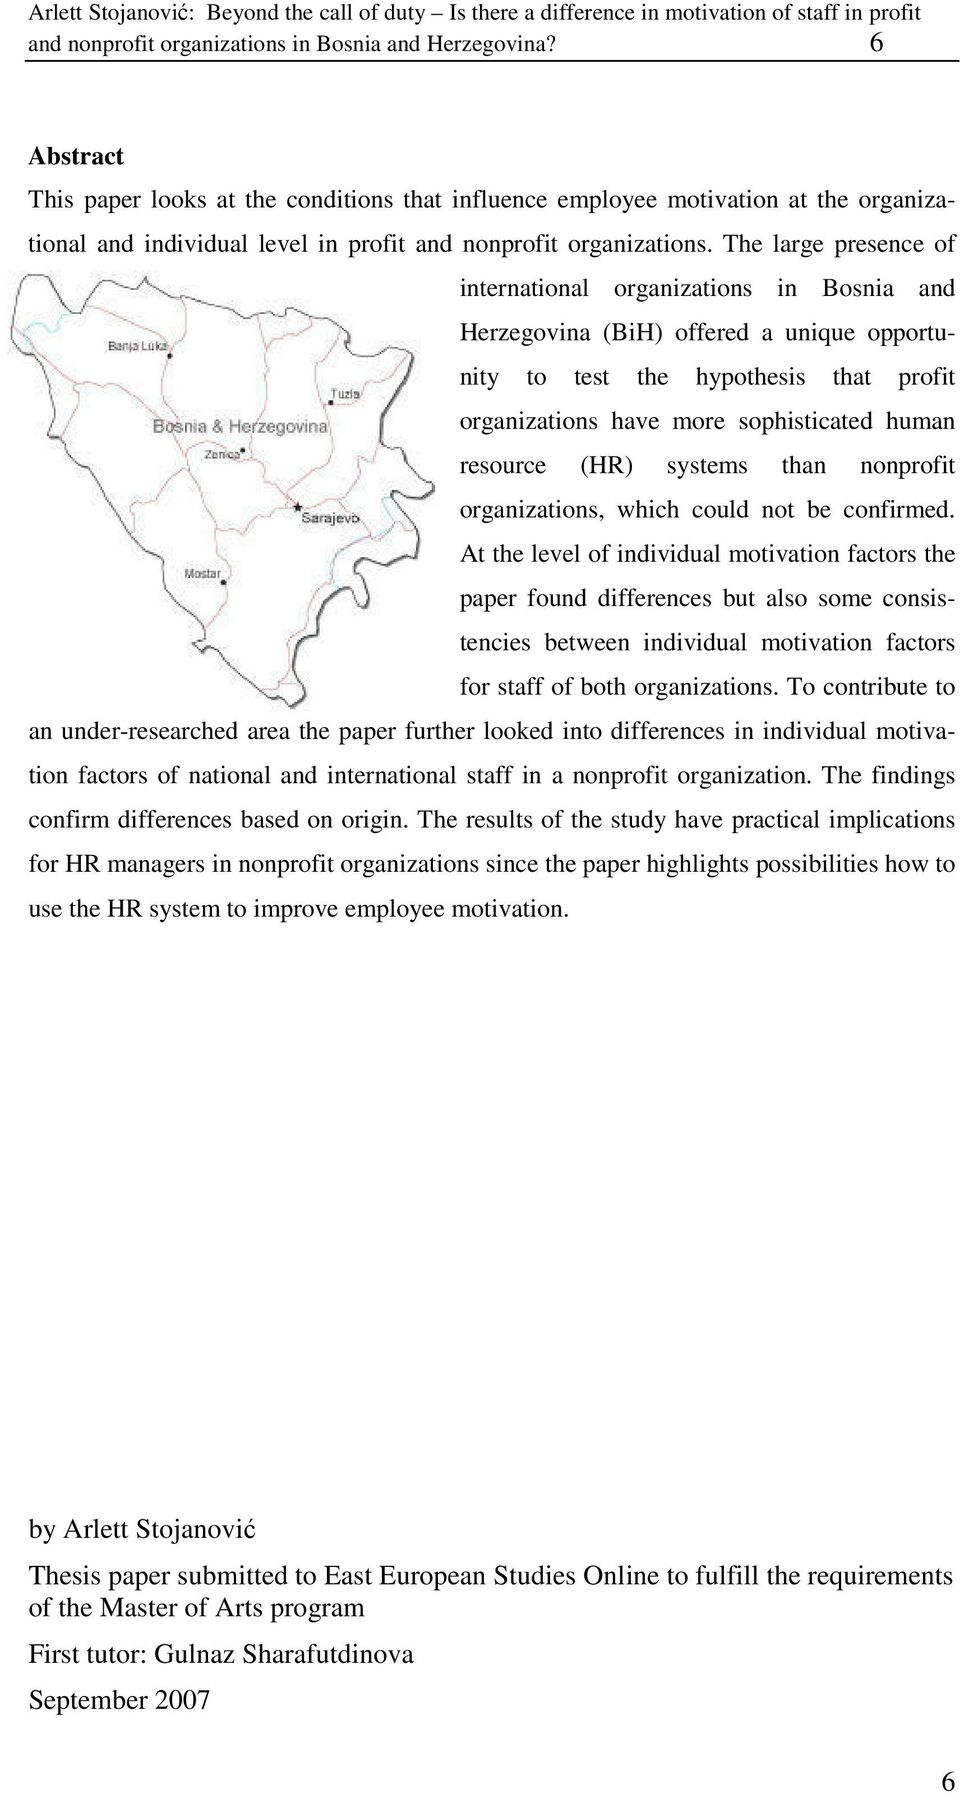 The large presence of international organizations in Bosnia and Herzegovina (BiH) offered a unique opportunity to test the hypothesis that profit organizations have more sophisticated human resource